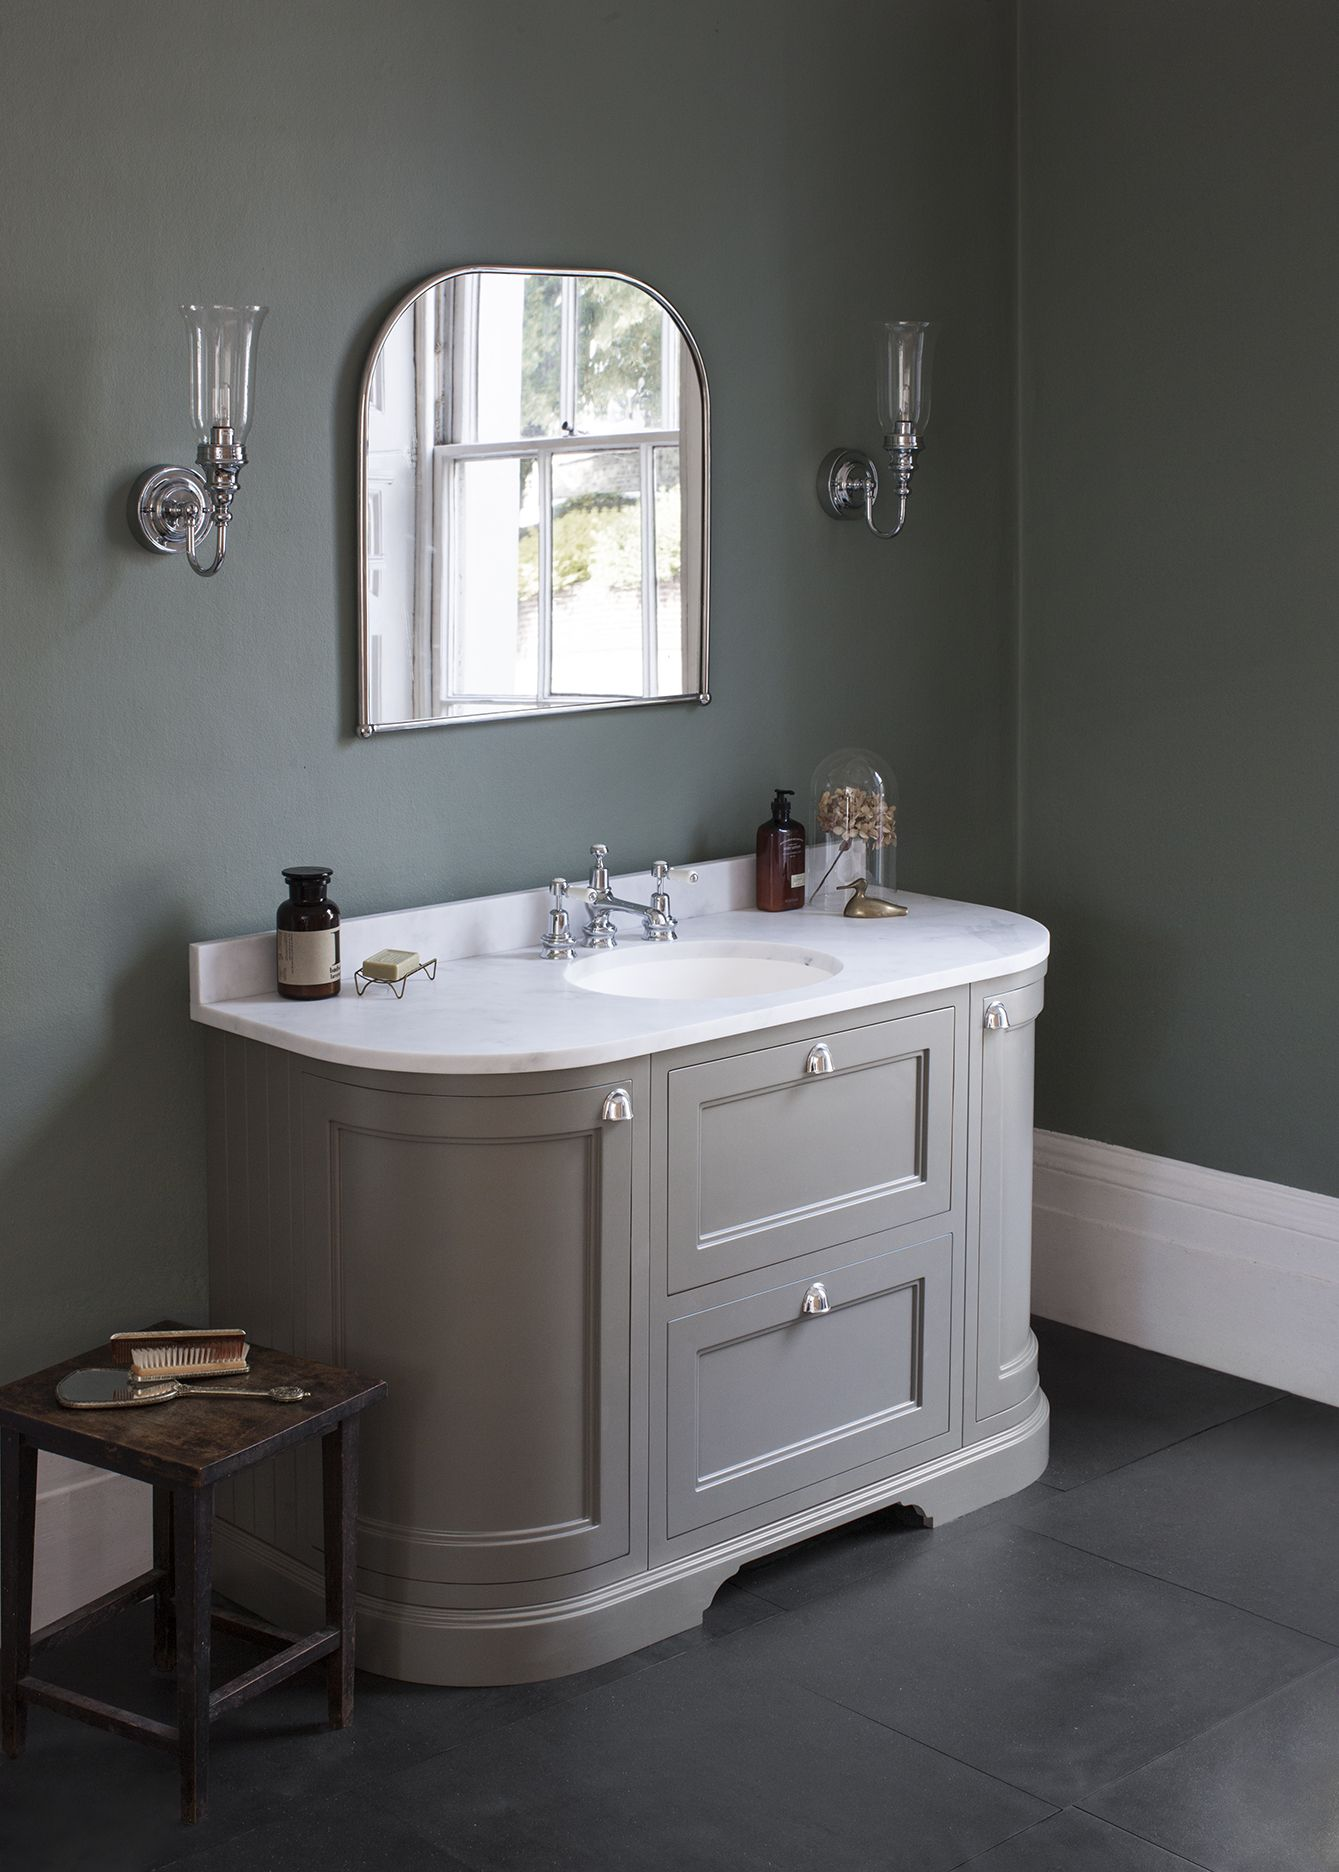 Small Cloakroom Toilet Pink